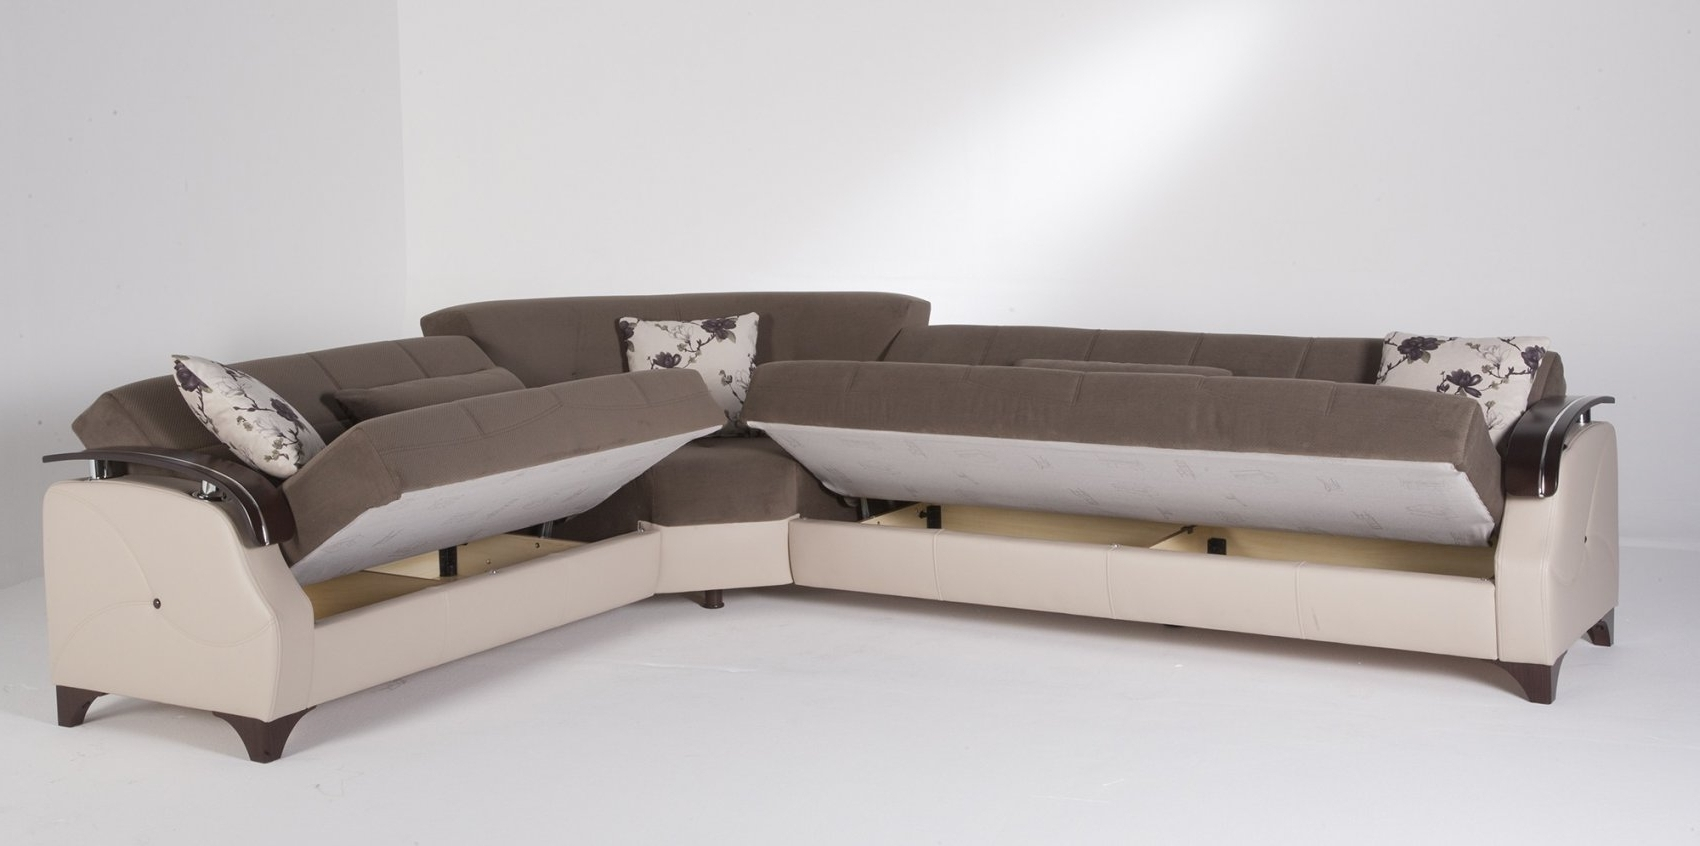 Leather Sectional Sleeper Sofa With Chaise 24 For Classic High For Inside Trendy Chaise Sectional Sleepers (View 4 of 15)